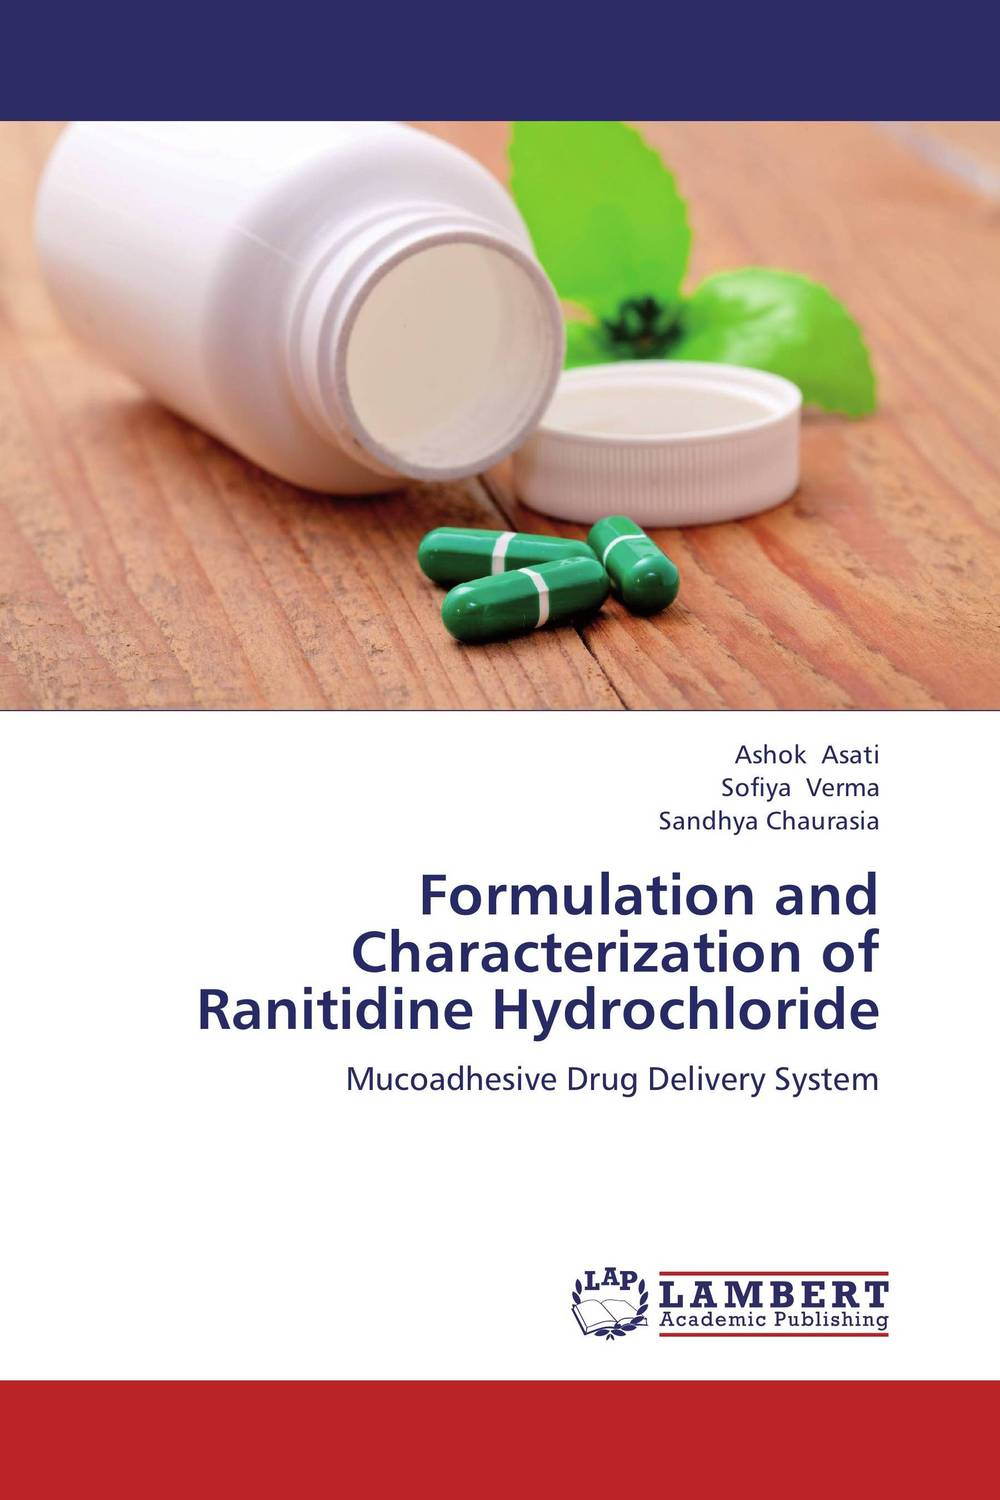 Formulation and Characterization of Ranitidine Hydrochloride amita yadav kamal singh rathore and geeta m patel formulation evaluation and optimization of mouth dissolving tablets